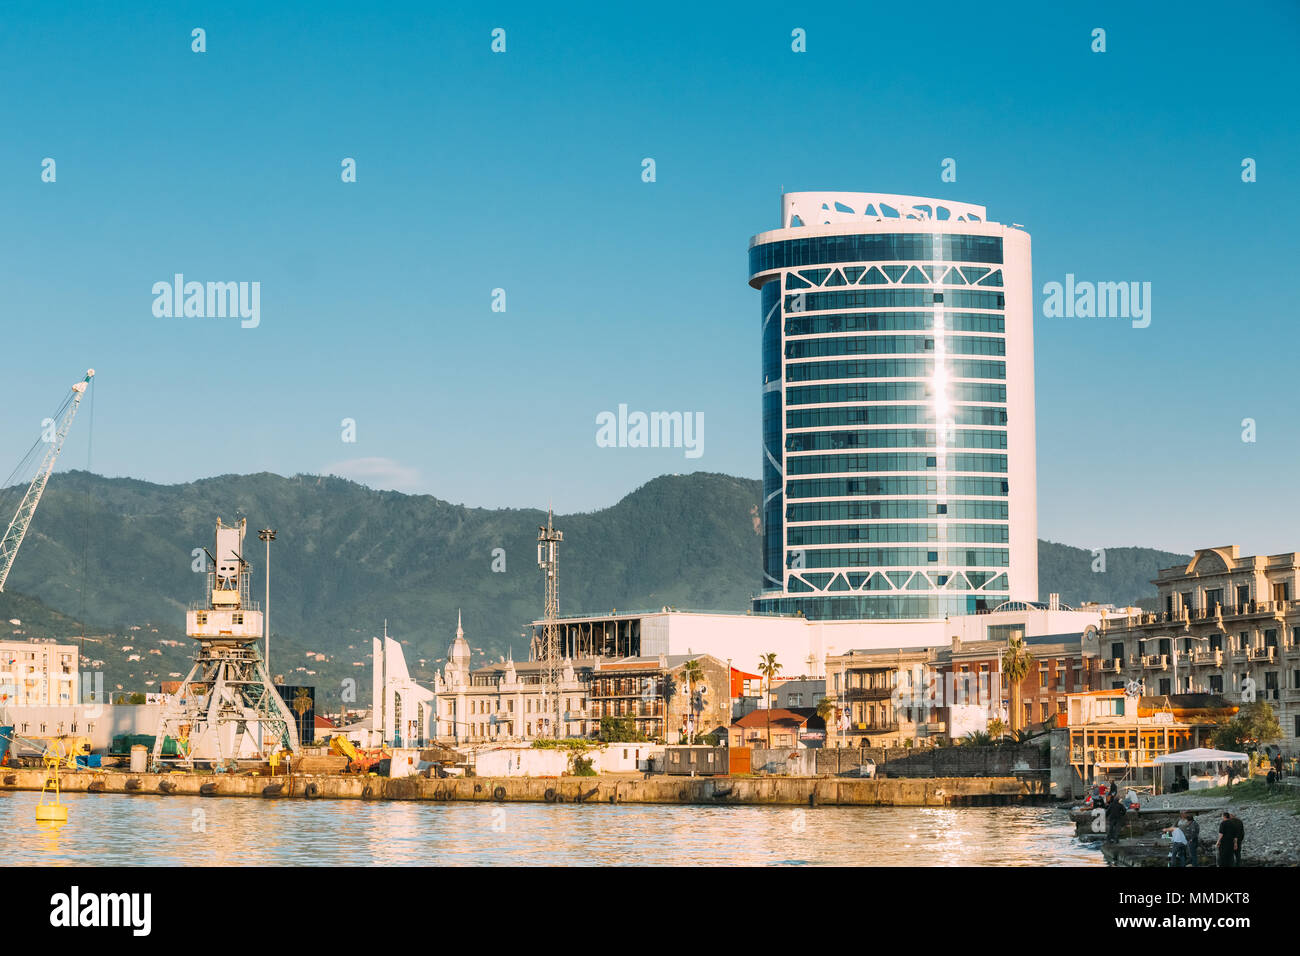 Port Dock On Sunny Evening At Sunset Or Sunrise Time In Batumi, Adjara, Georgia - Stock Image